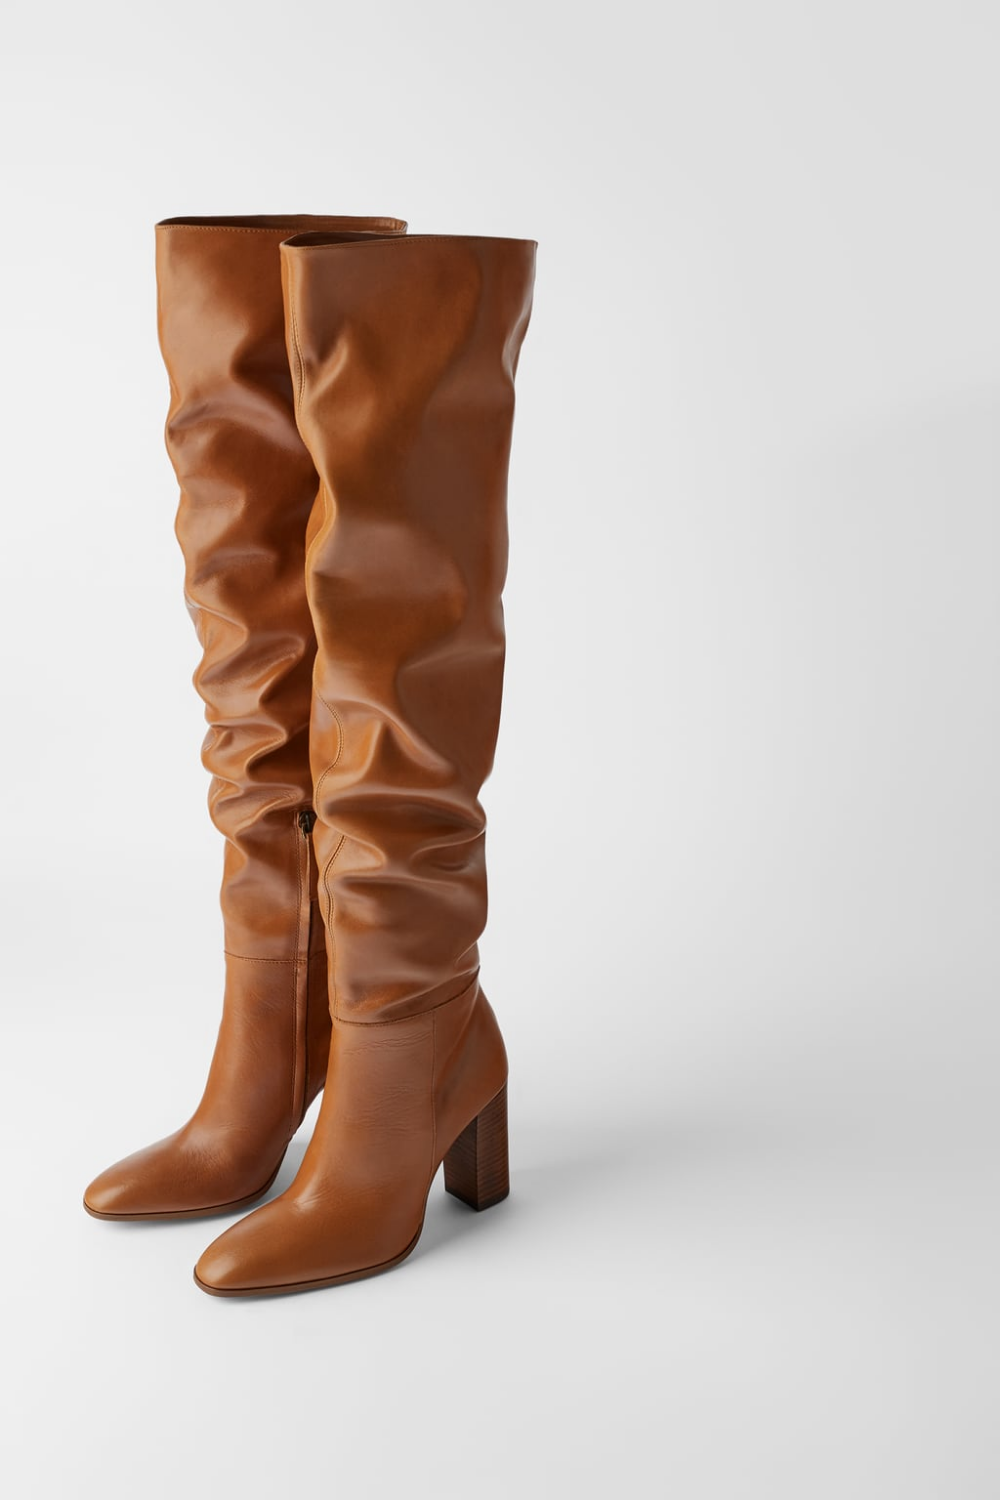 Pin By Nikka Nik On Shoes Leather Boots Heels Boots Leather Boots